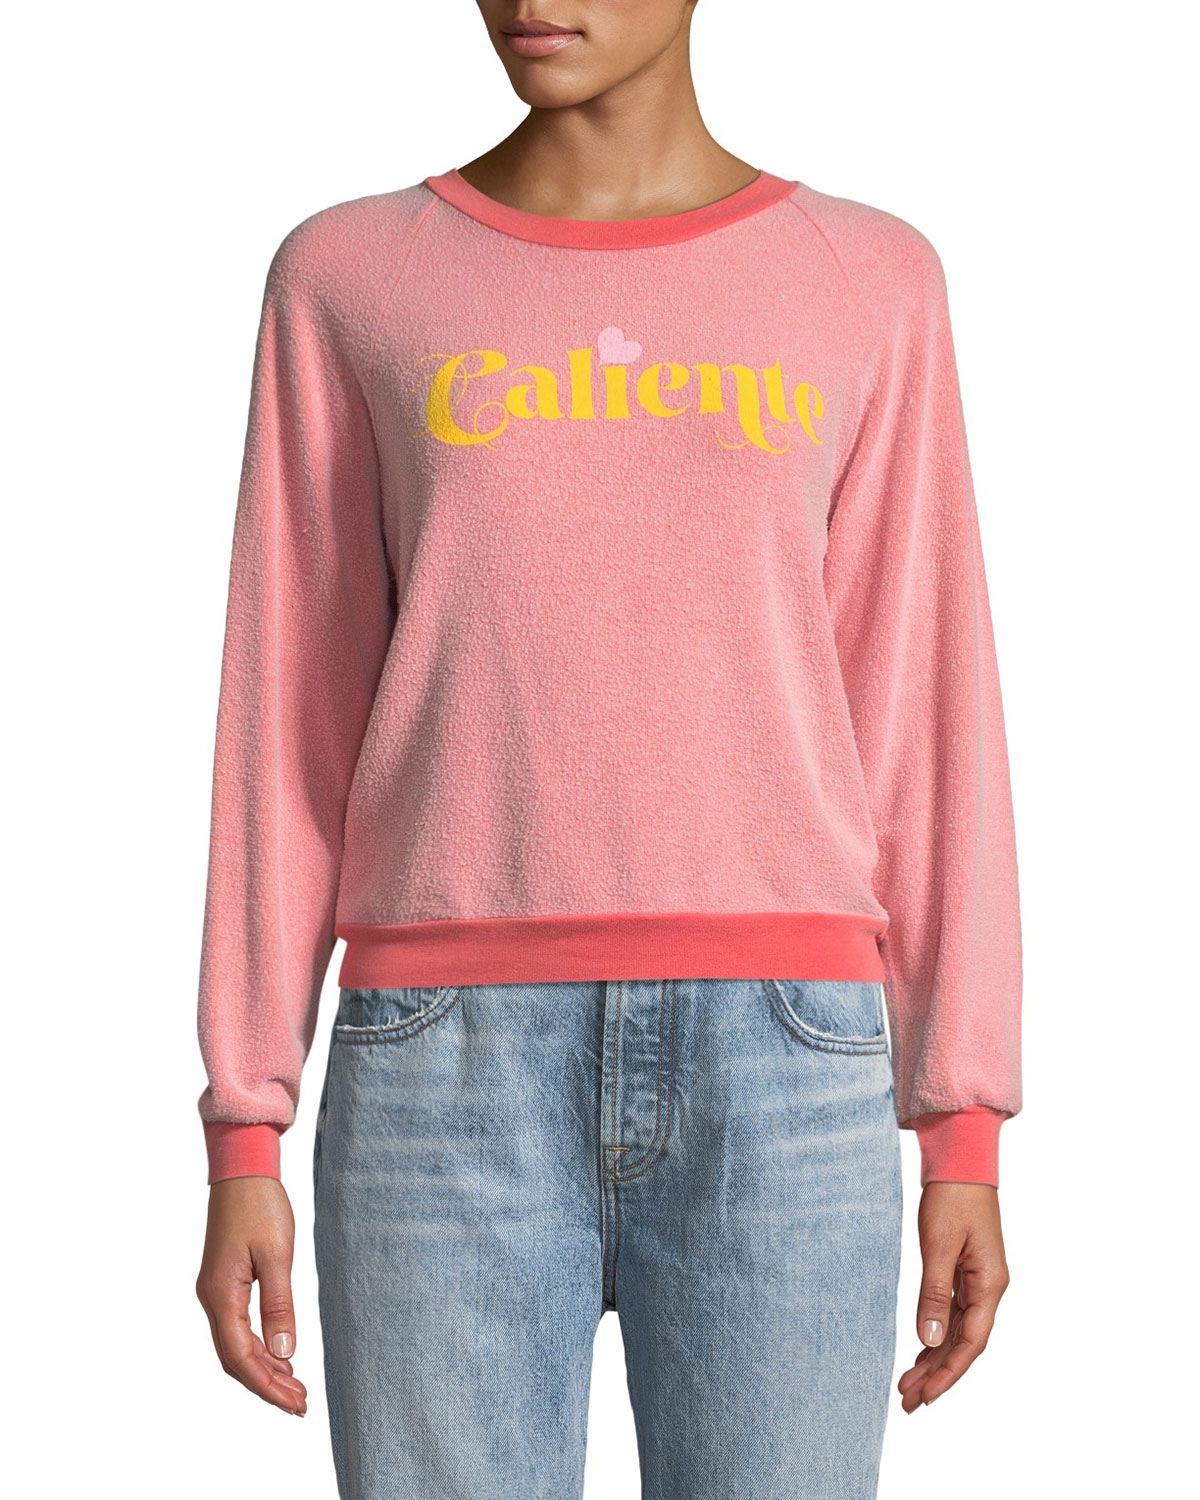 Caliente Shrunken Graphic Sweatshirt